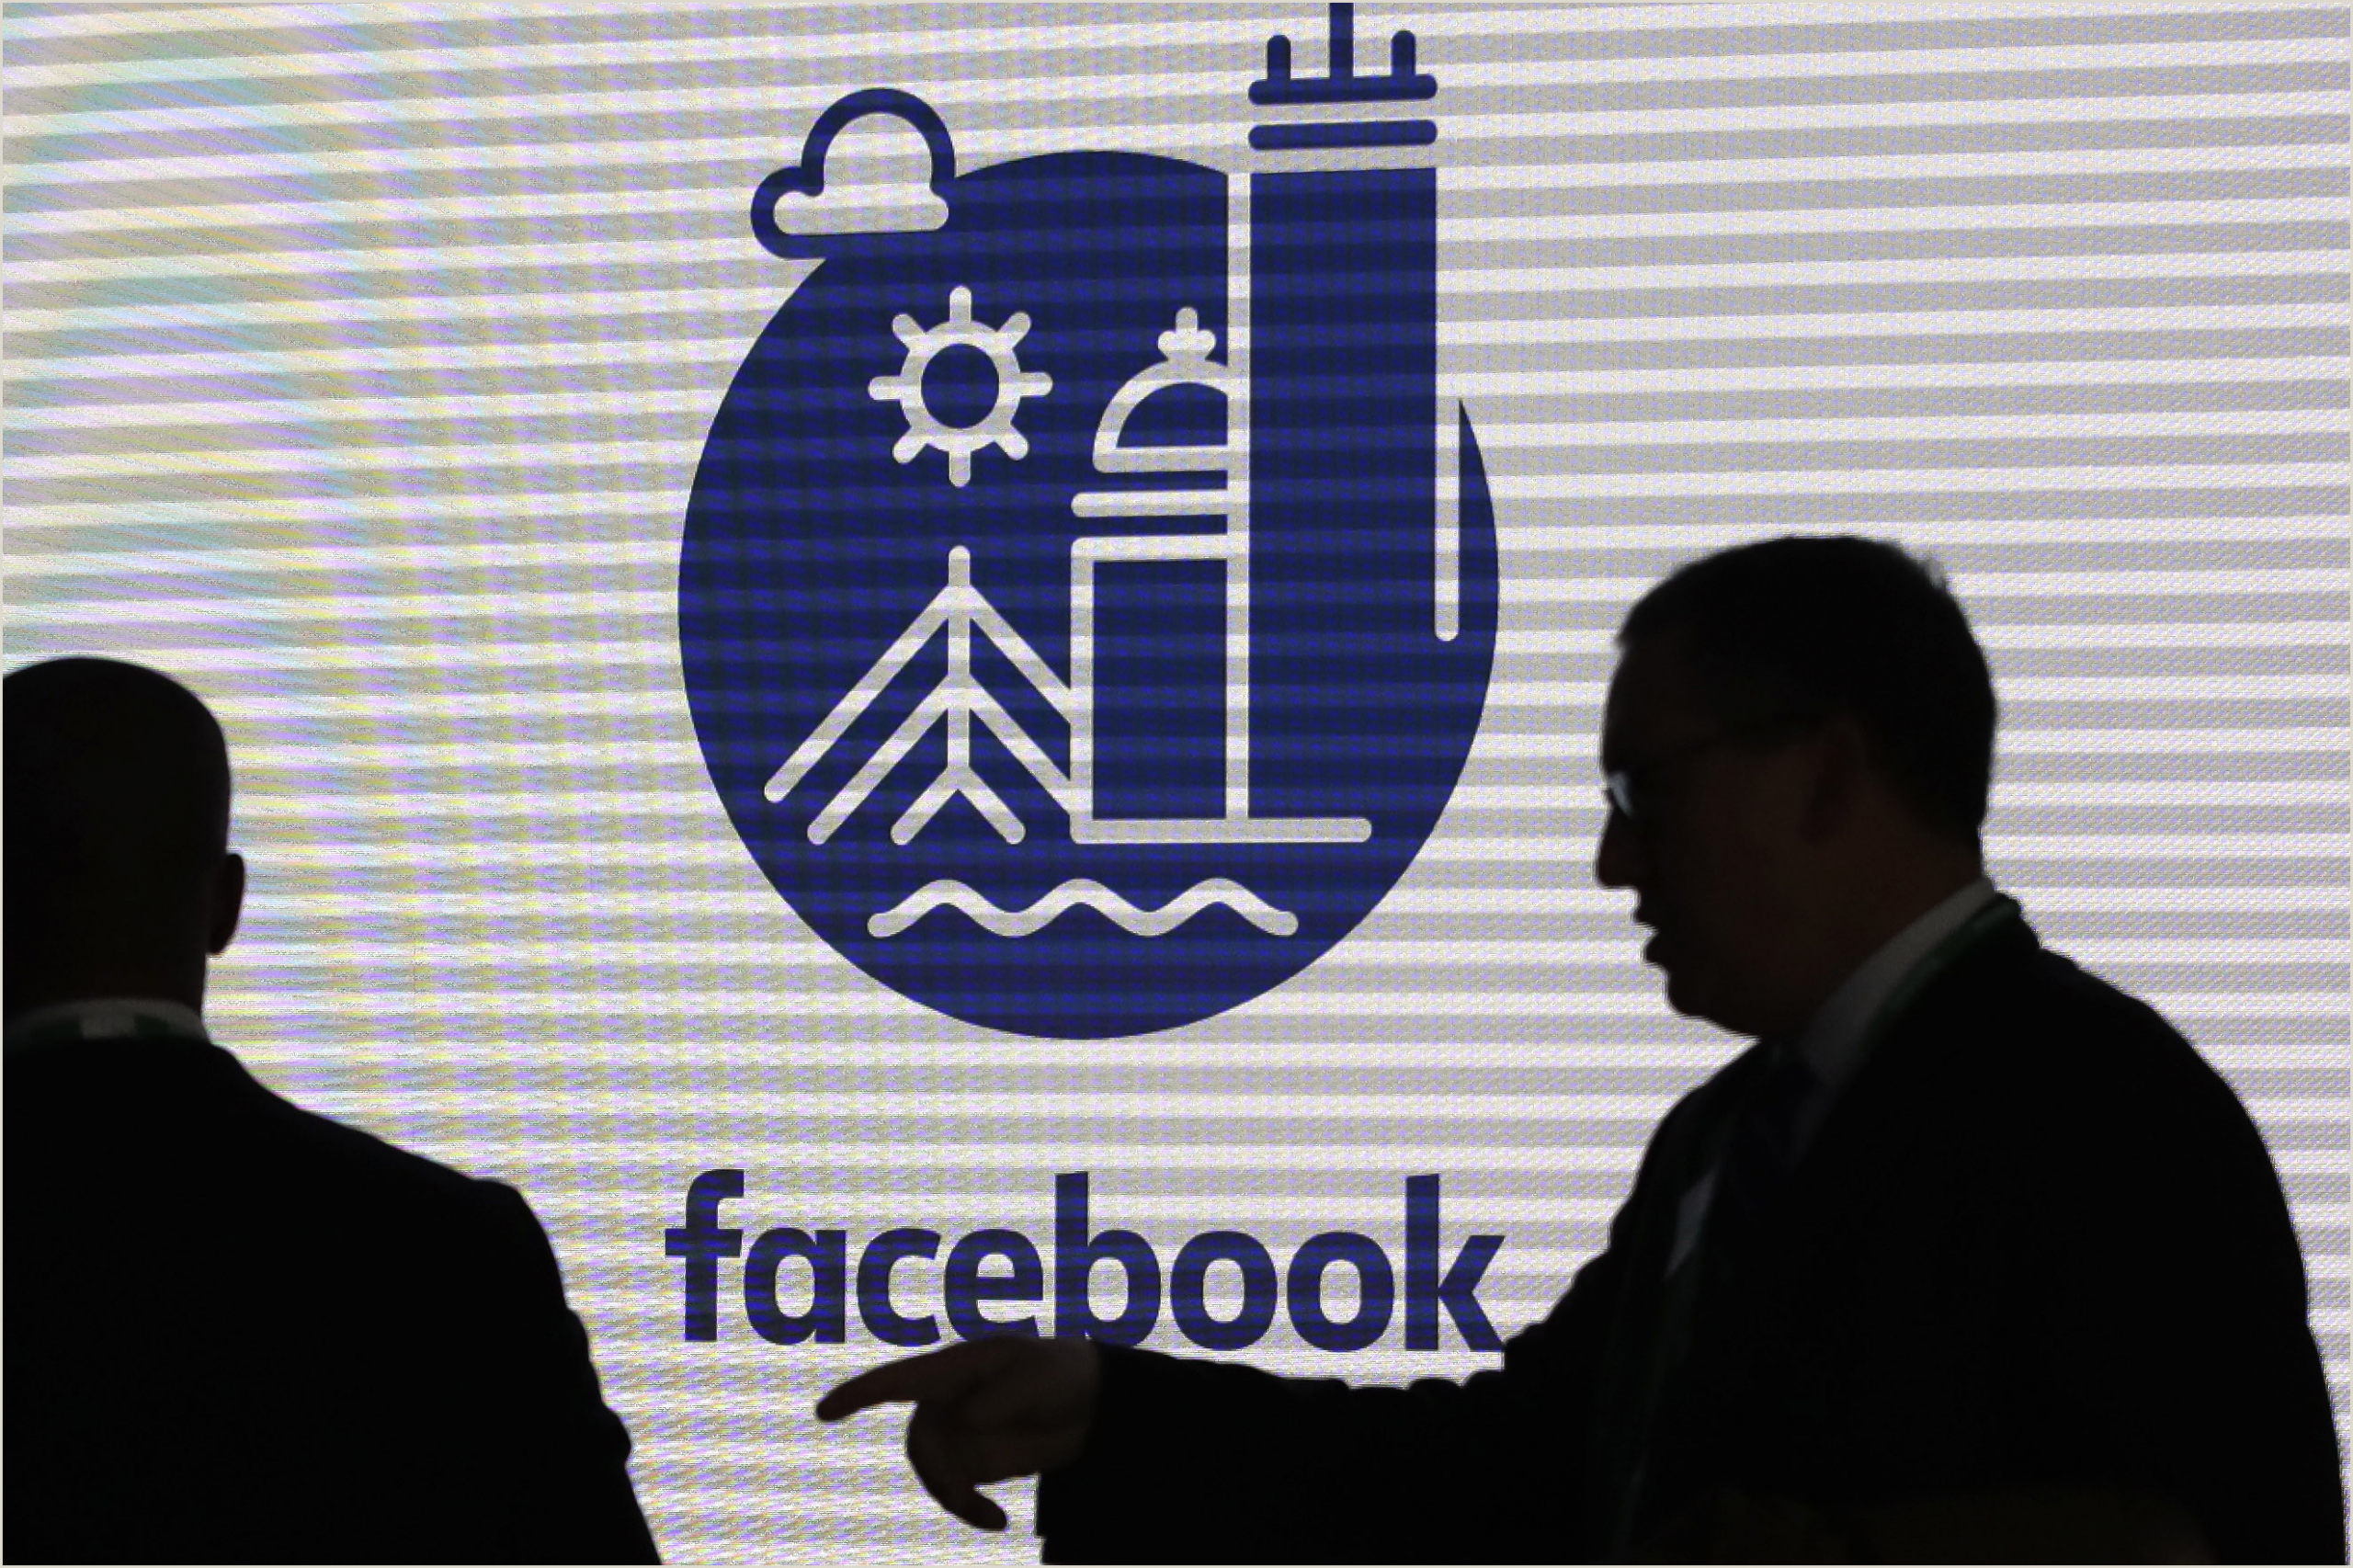 Facebook Logos For Business Cards Why Hired A Patriot Act Author And Privacy Activist